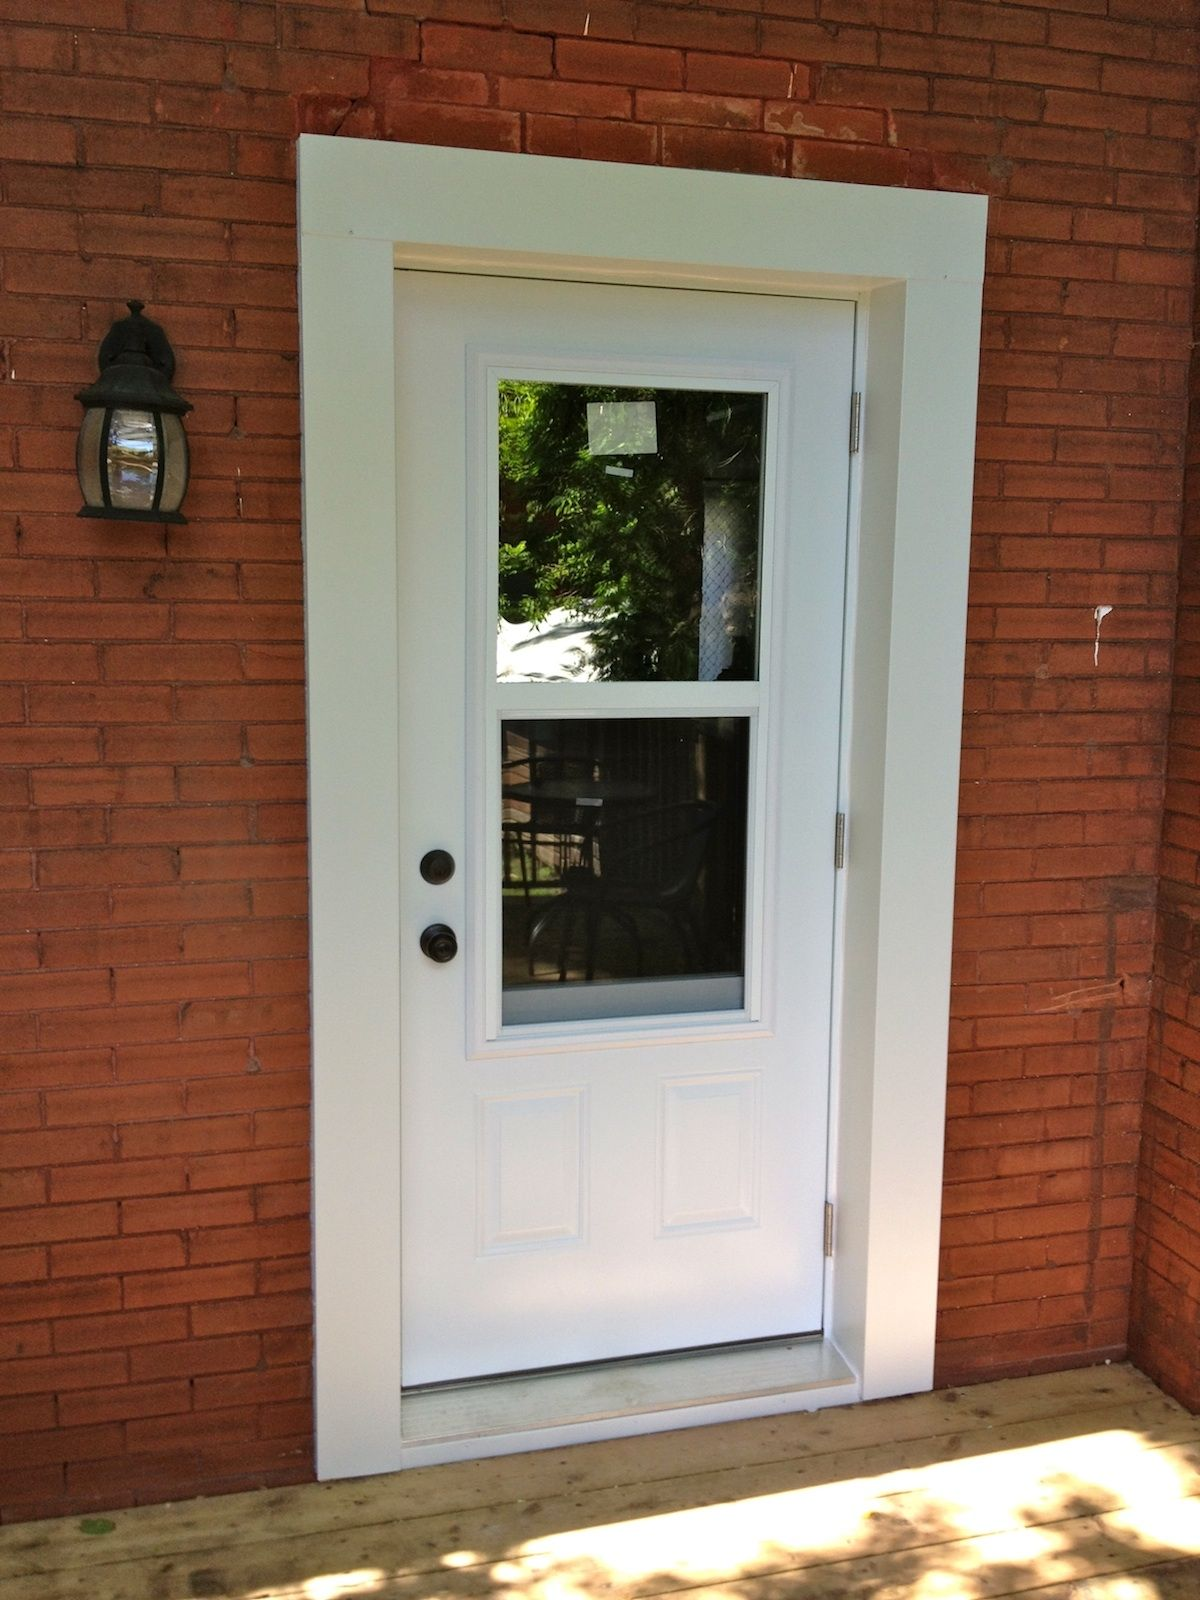 Exterior Door With Windows That Open Istranka for ...